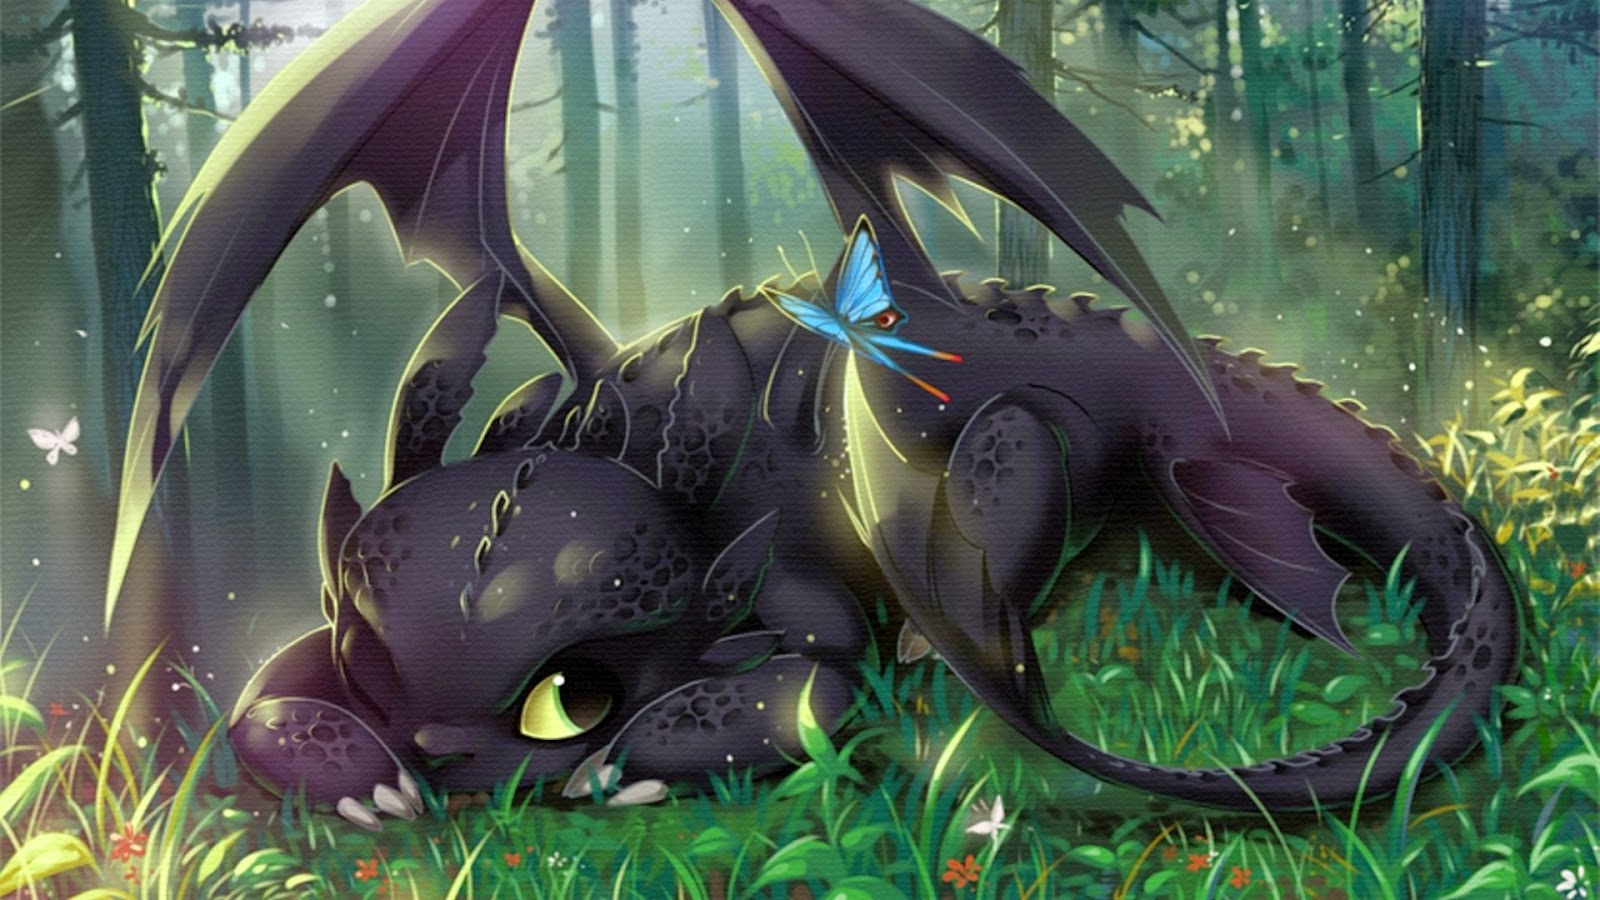 https://annelfwind.files.wordpress.com/2014/09/fb125-how-to-train-your-dragon-2-toothless-cute-art-wallpaper.jpg